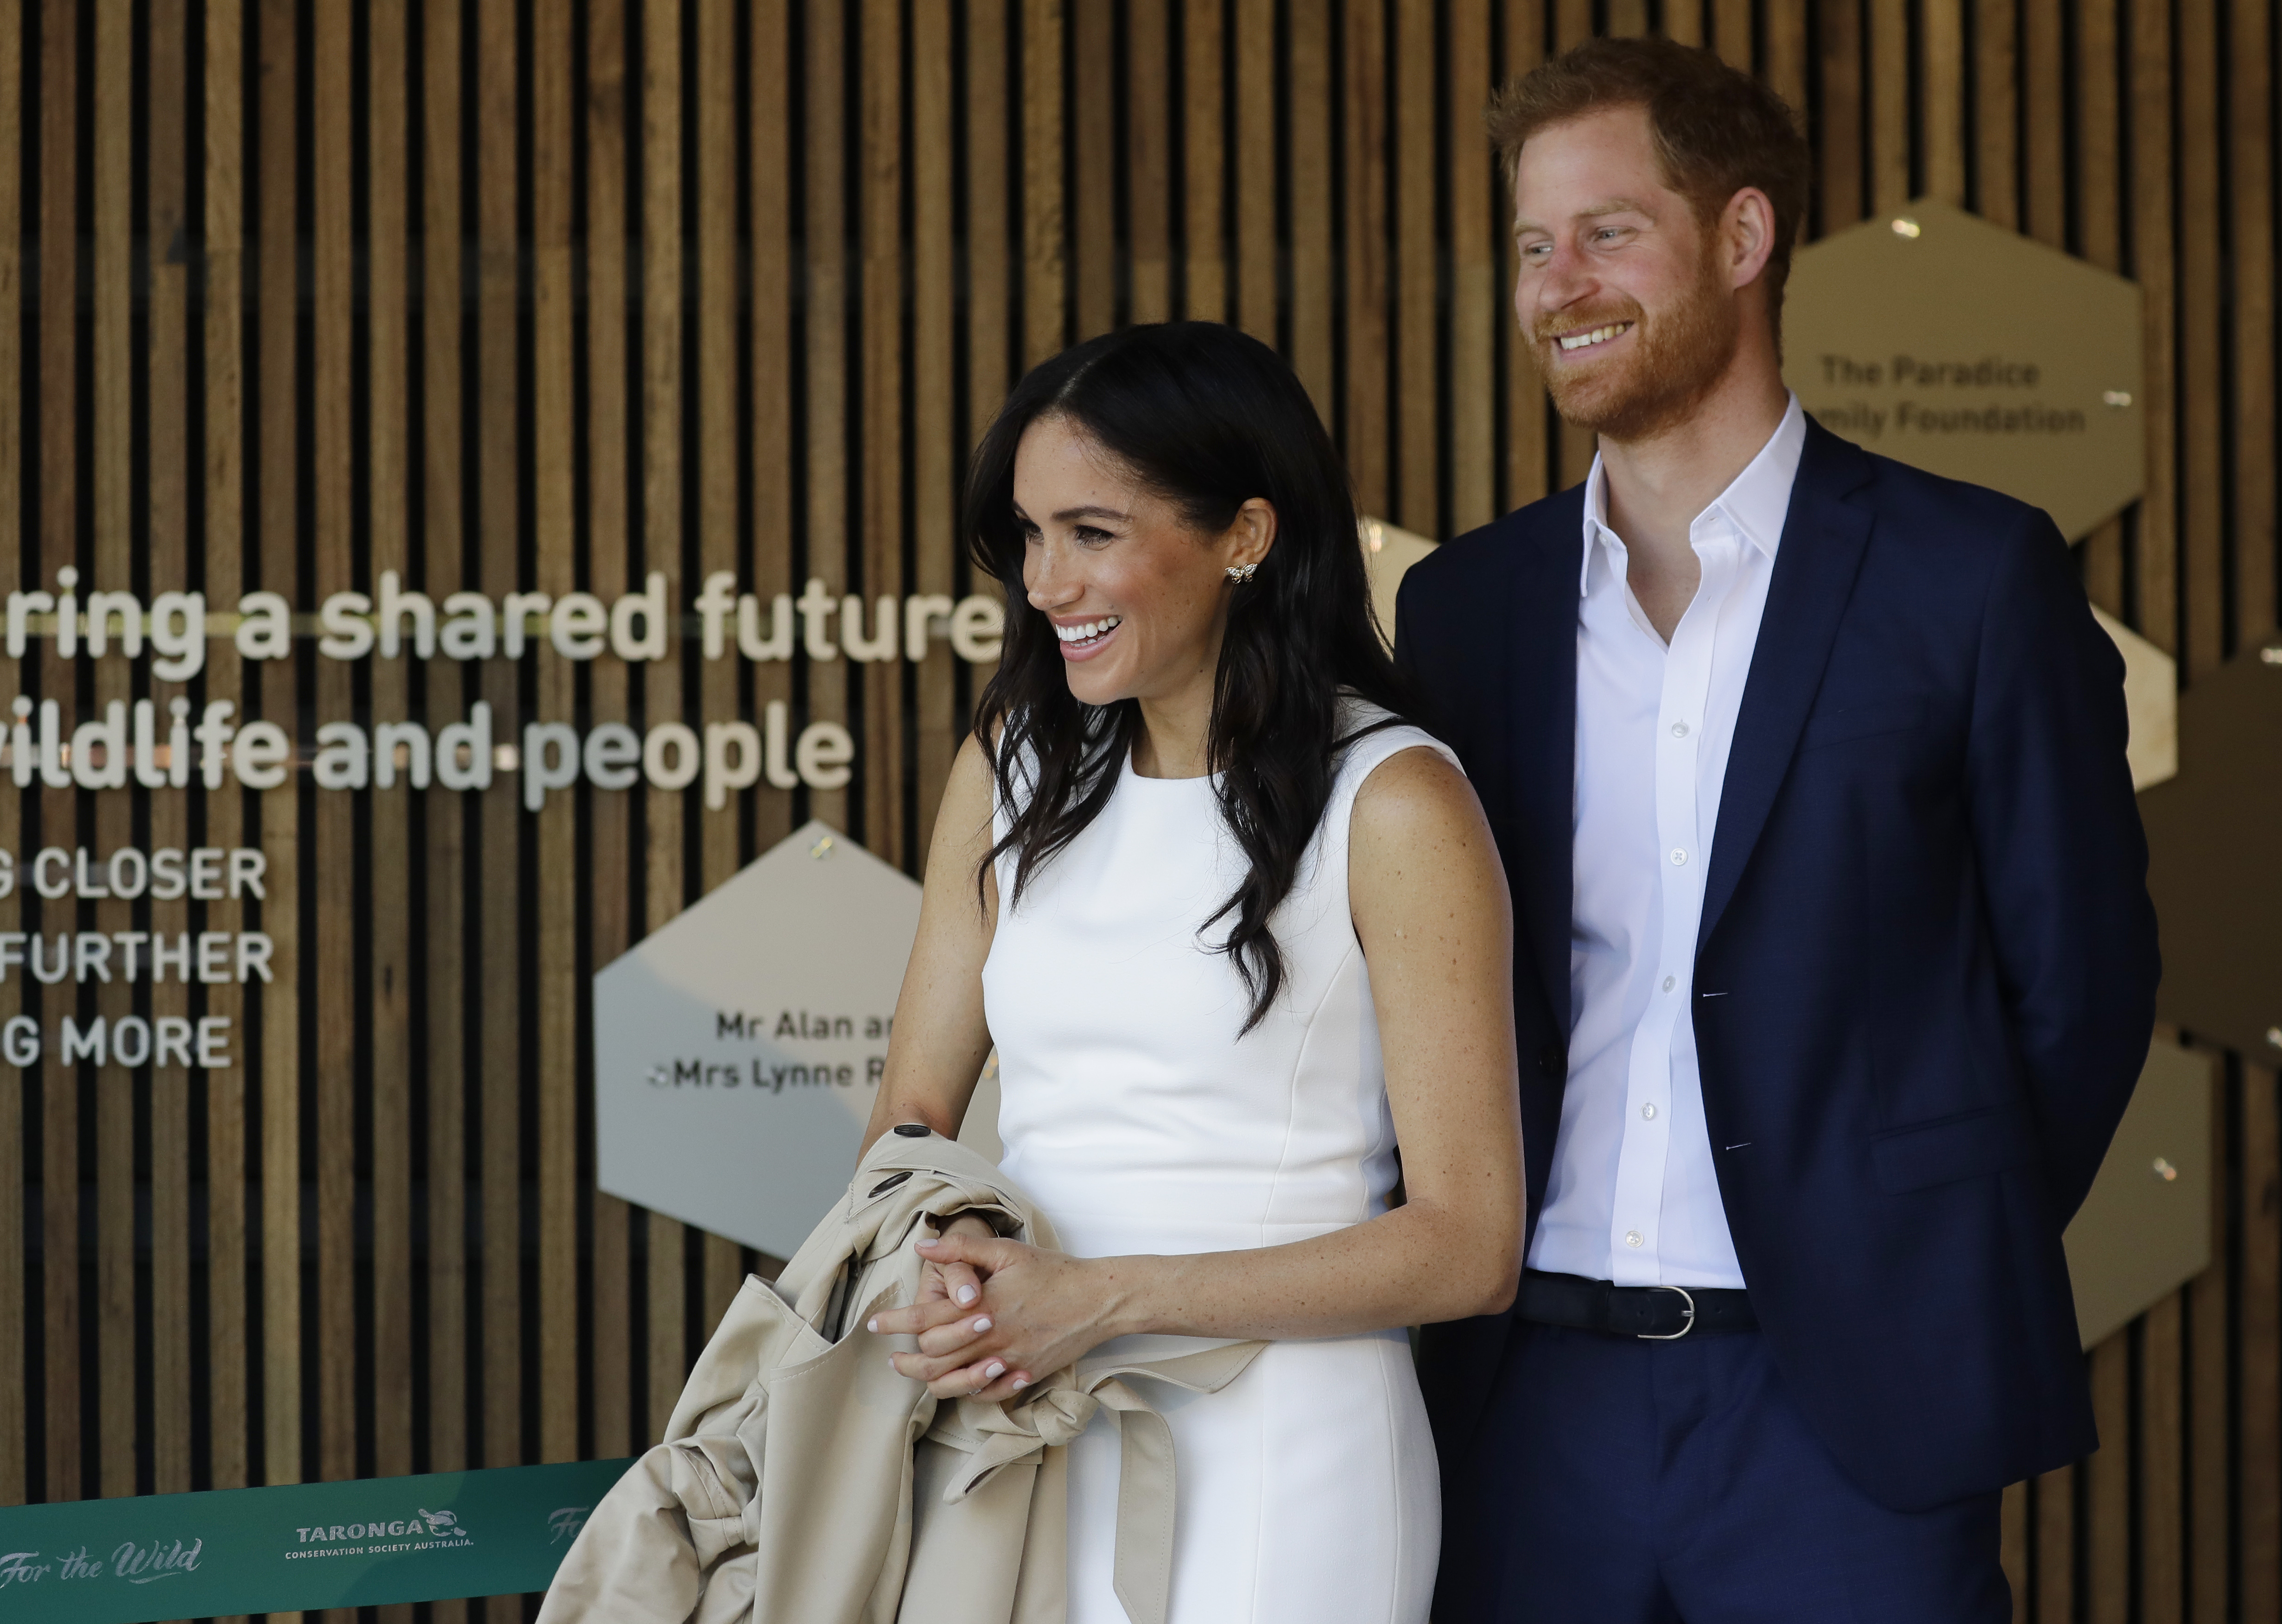 Prince Harry, Duke of Sussex and Meghan, Duchess of Sussex attend a ceremony at Taronga Zoo on October 16, 2018 in Sydney, Australia. The Duke and Duchess of Sussex are on their official 16-day Autumn tour visiting cities in Australia, Fiji, Tonga and New Zealand.